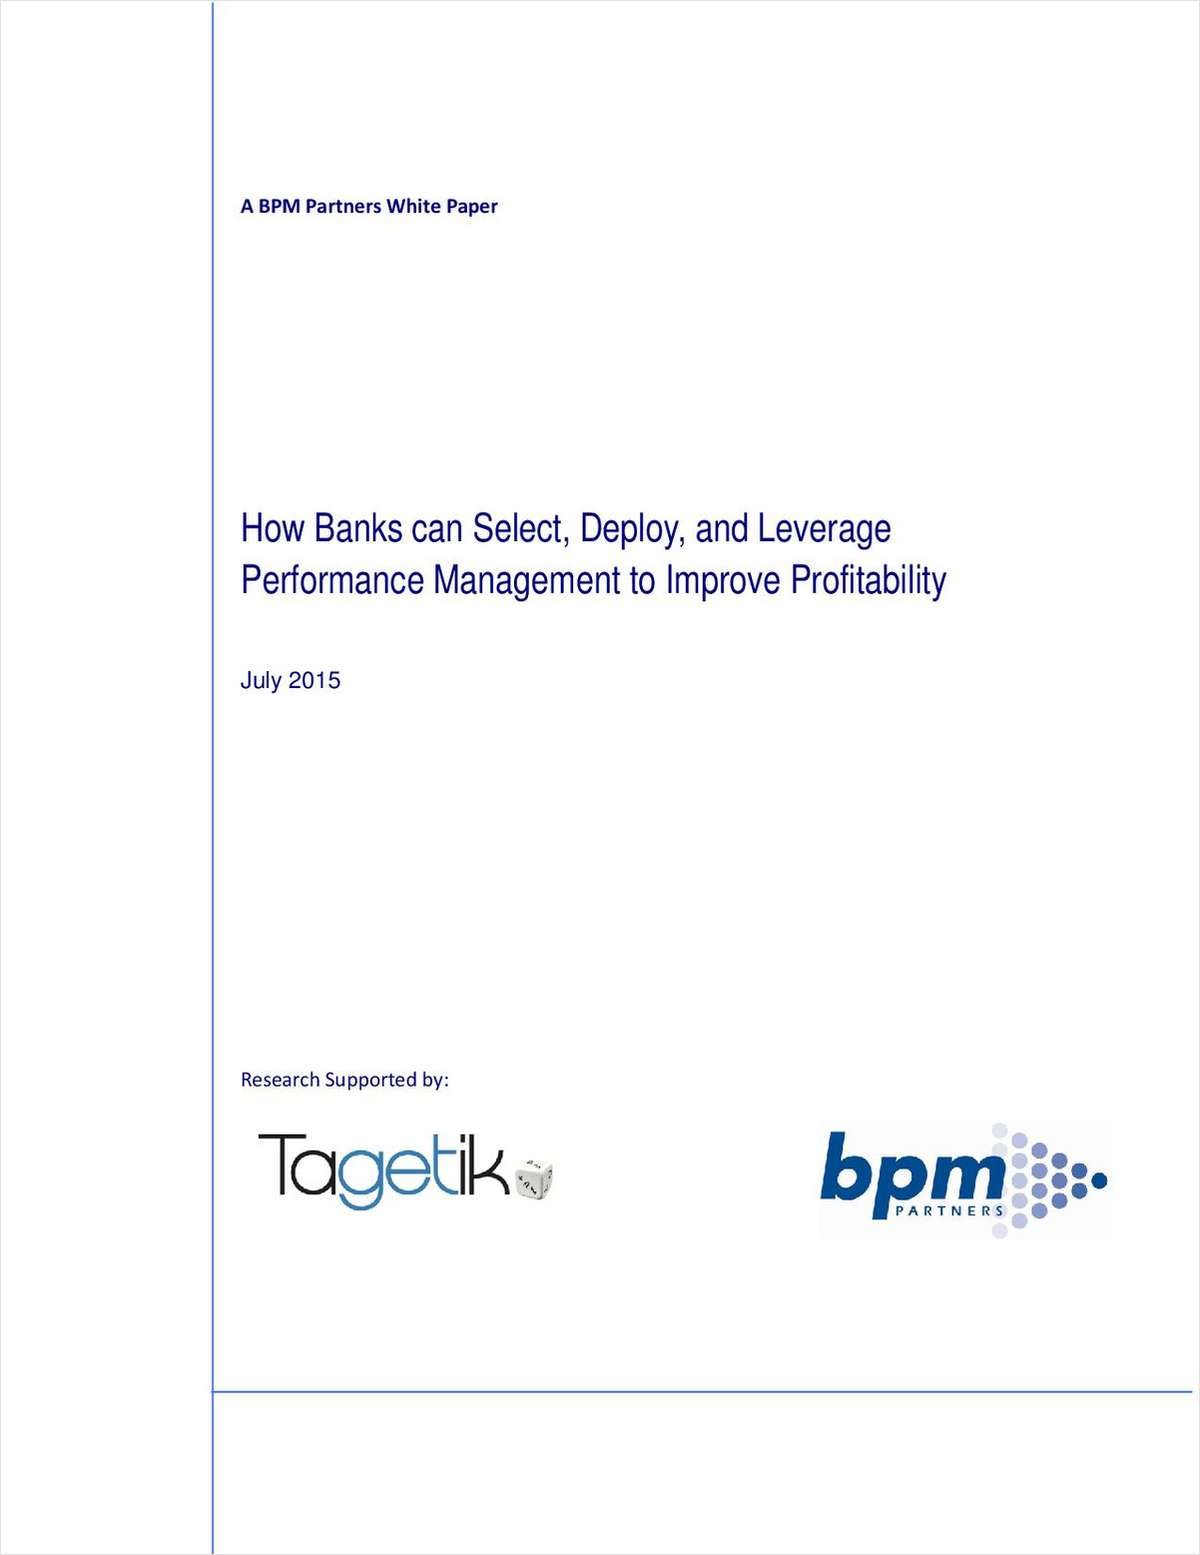 How Banks Can Select, Deploy and Leverage Performance Management to Improve Profitability